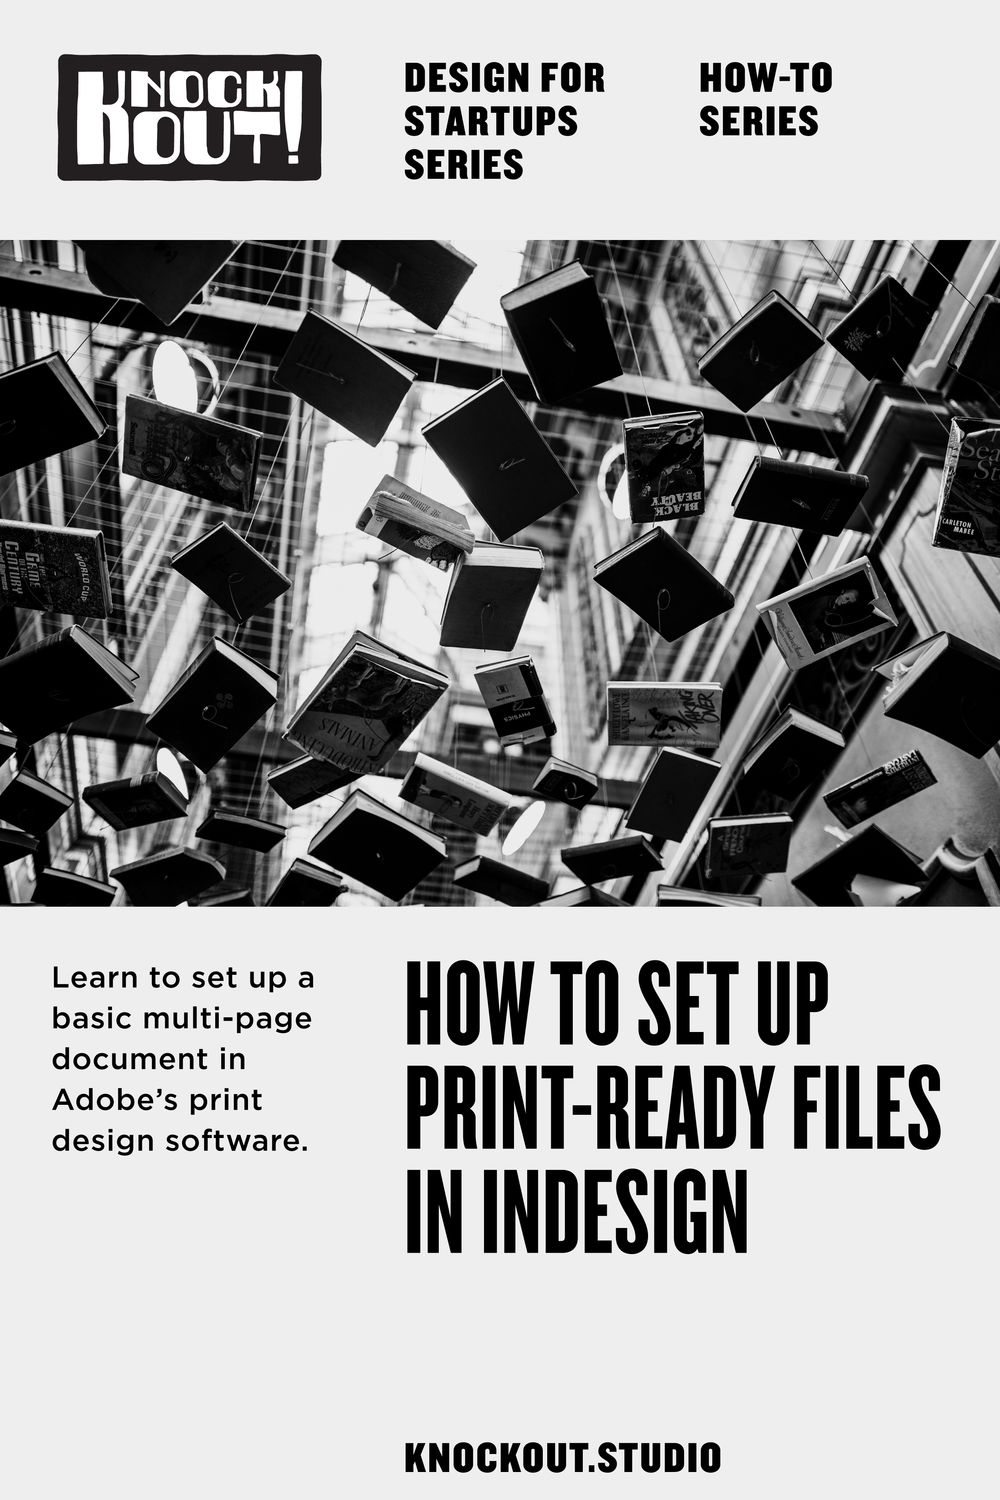 Learn to set up a basic multi-page document in Adobe InDesign.